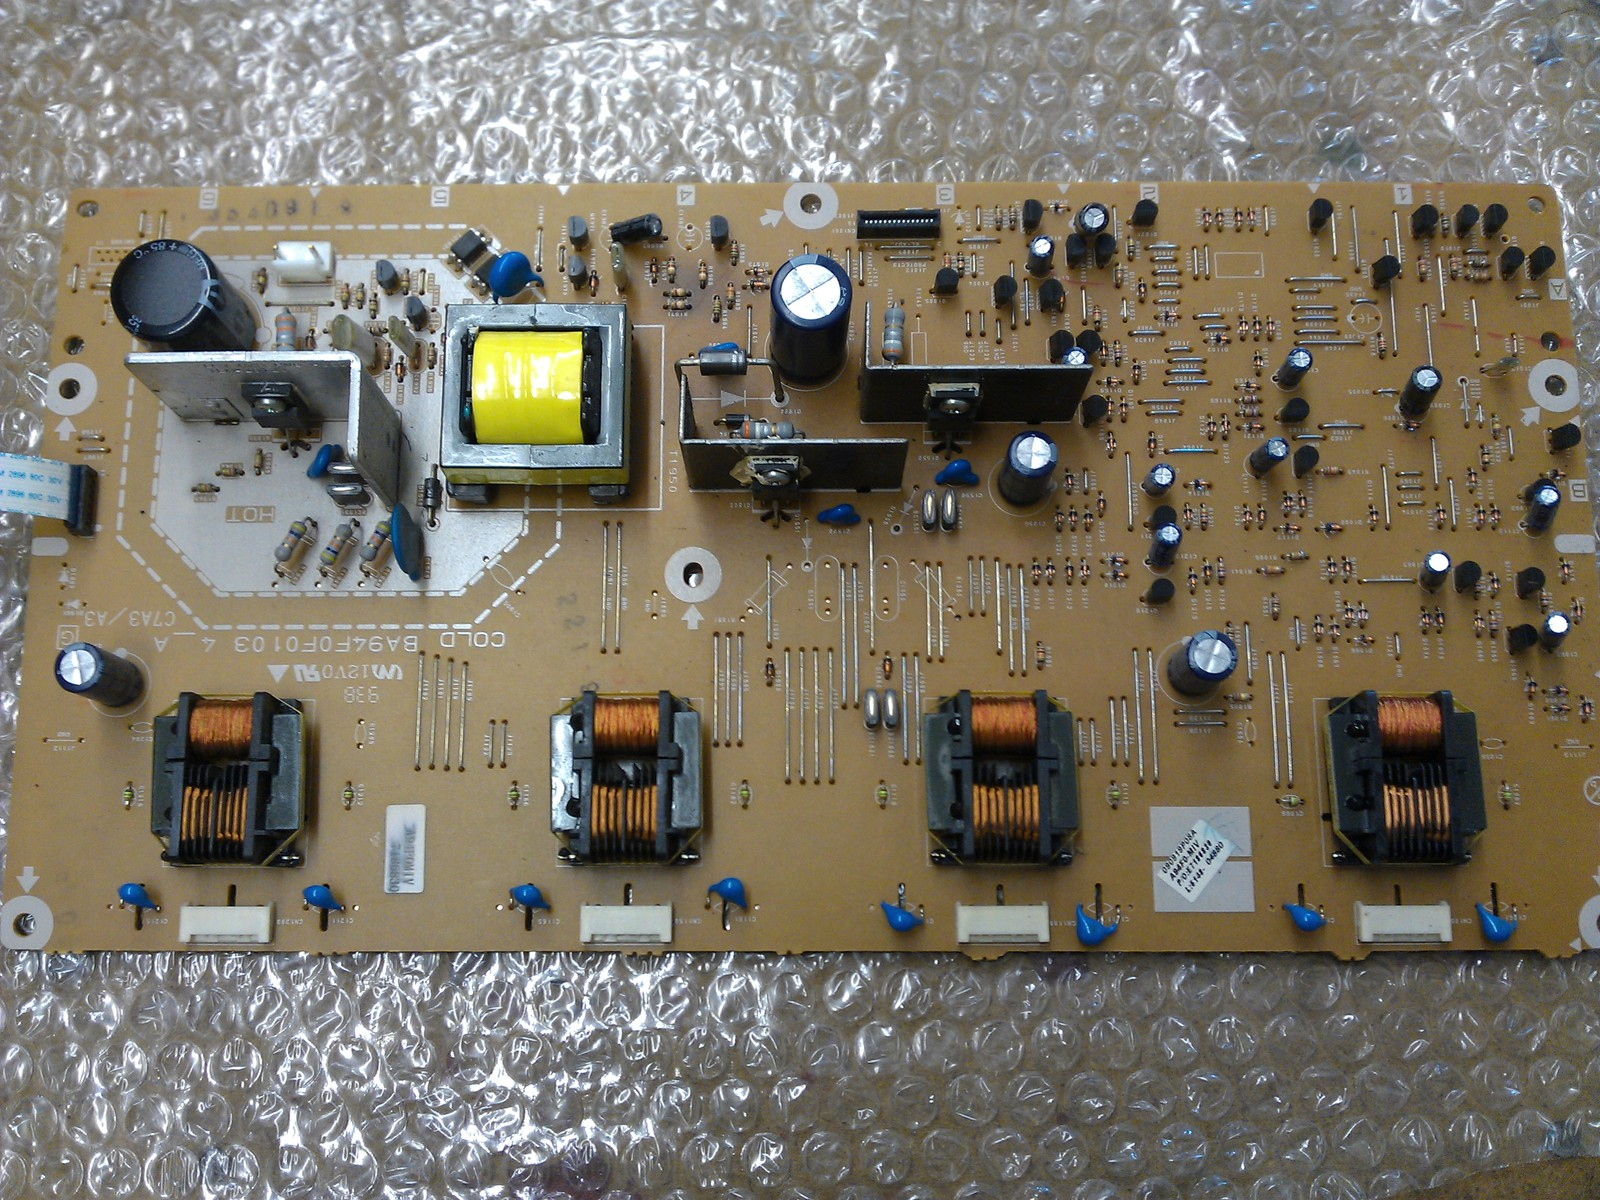 A94F0MIV Power Supply Invetr Board From Magnavox 32MD359B/F7 LCD TV